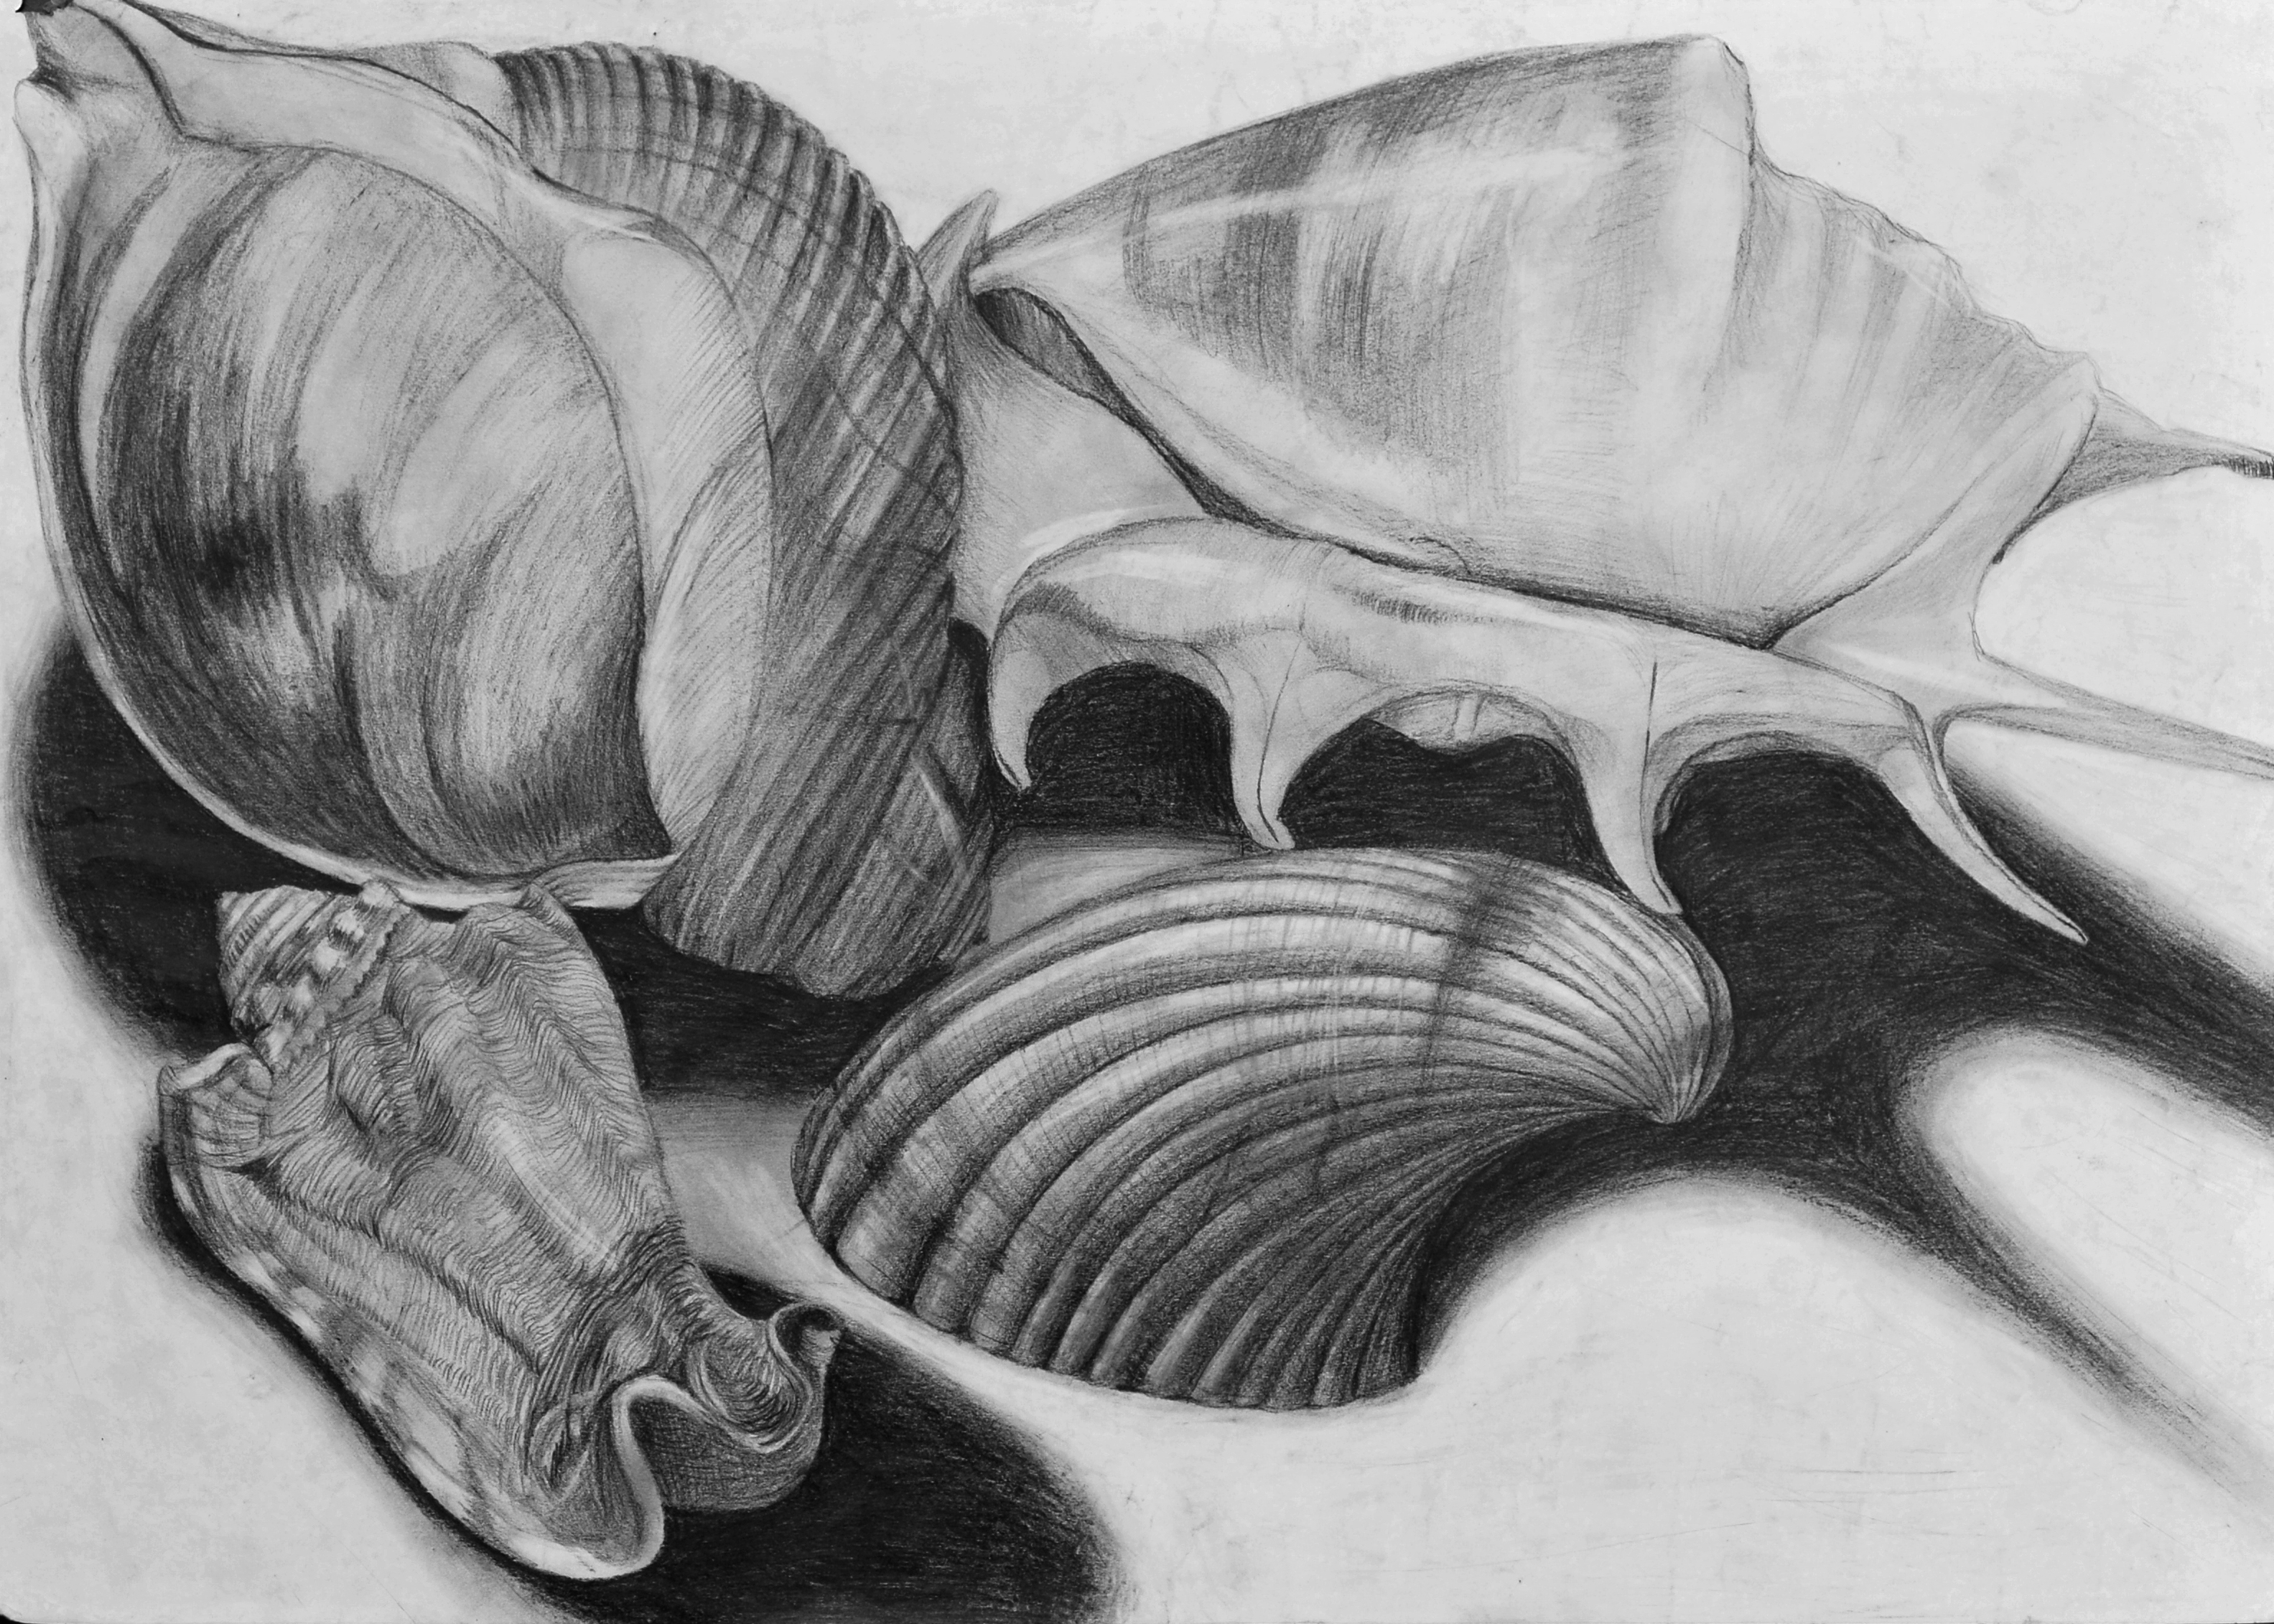 Drawn shell shaded Shells Shells Tes Lessons Life: